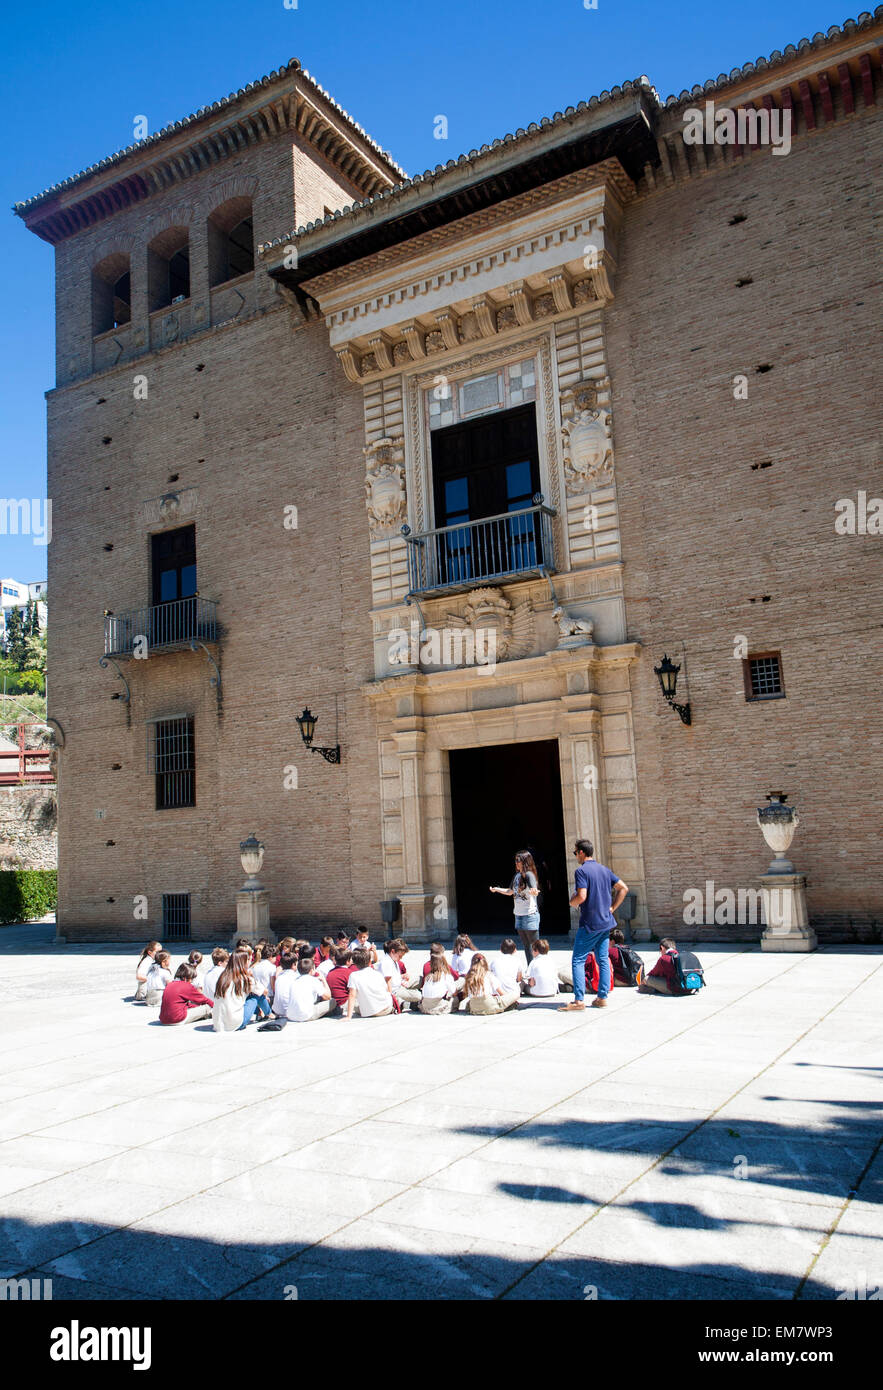 School children listen to their teacher on an educational visit to the historic sites of Granada, Spain - Stock Image